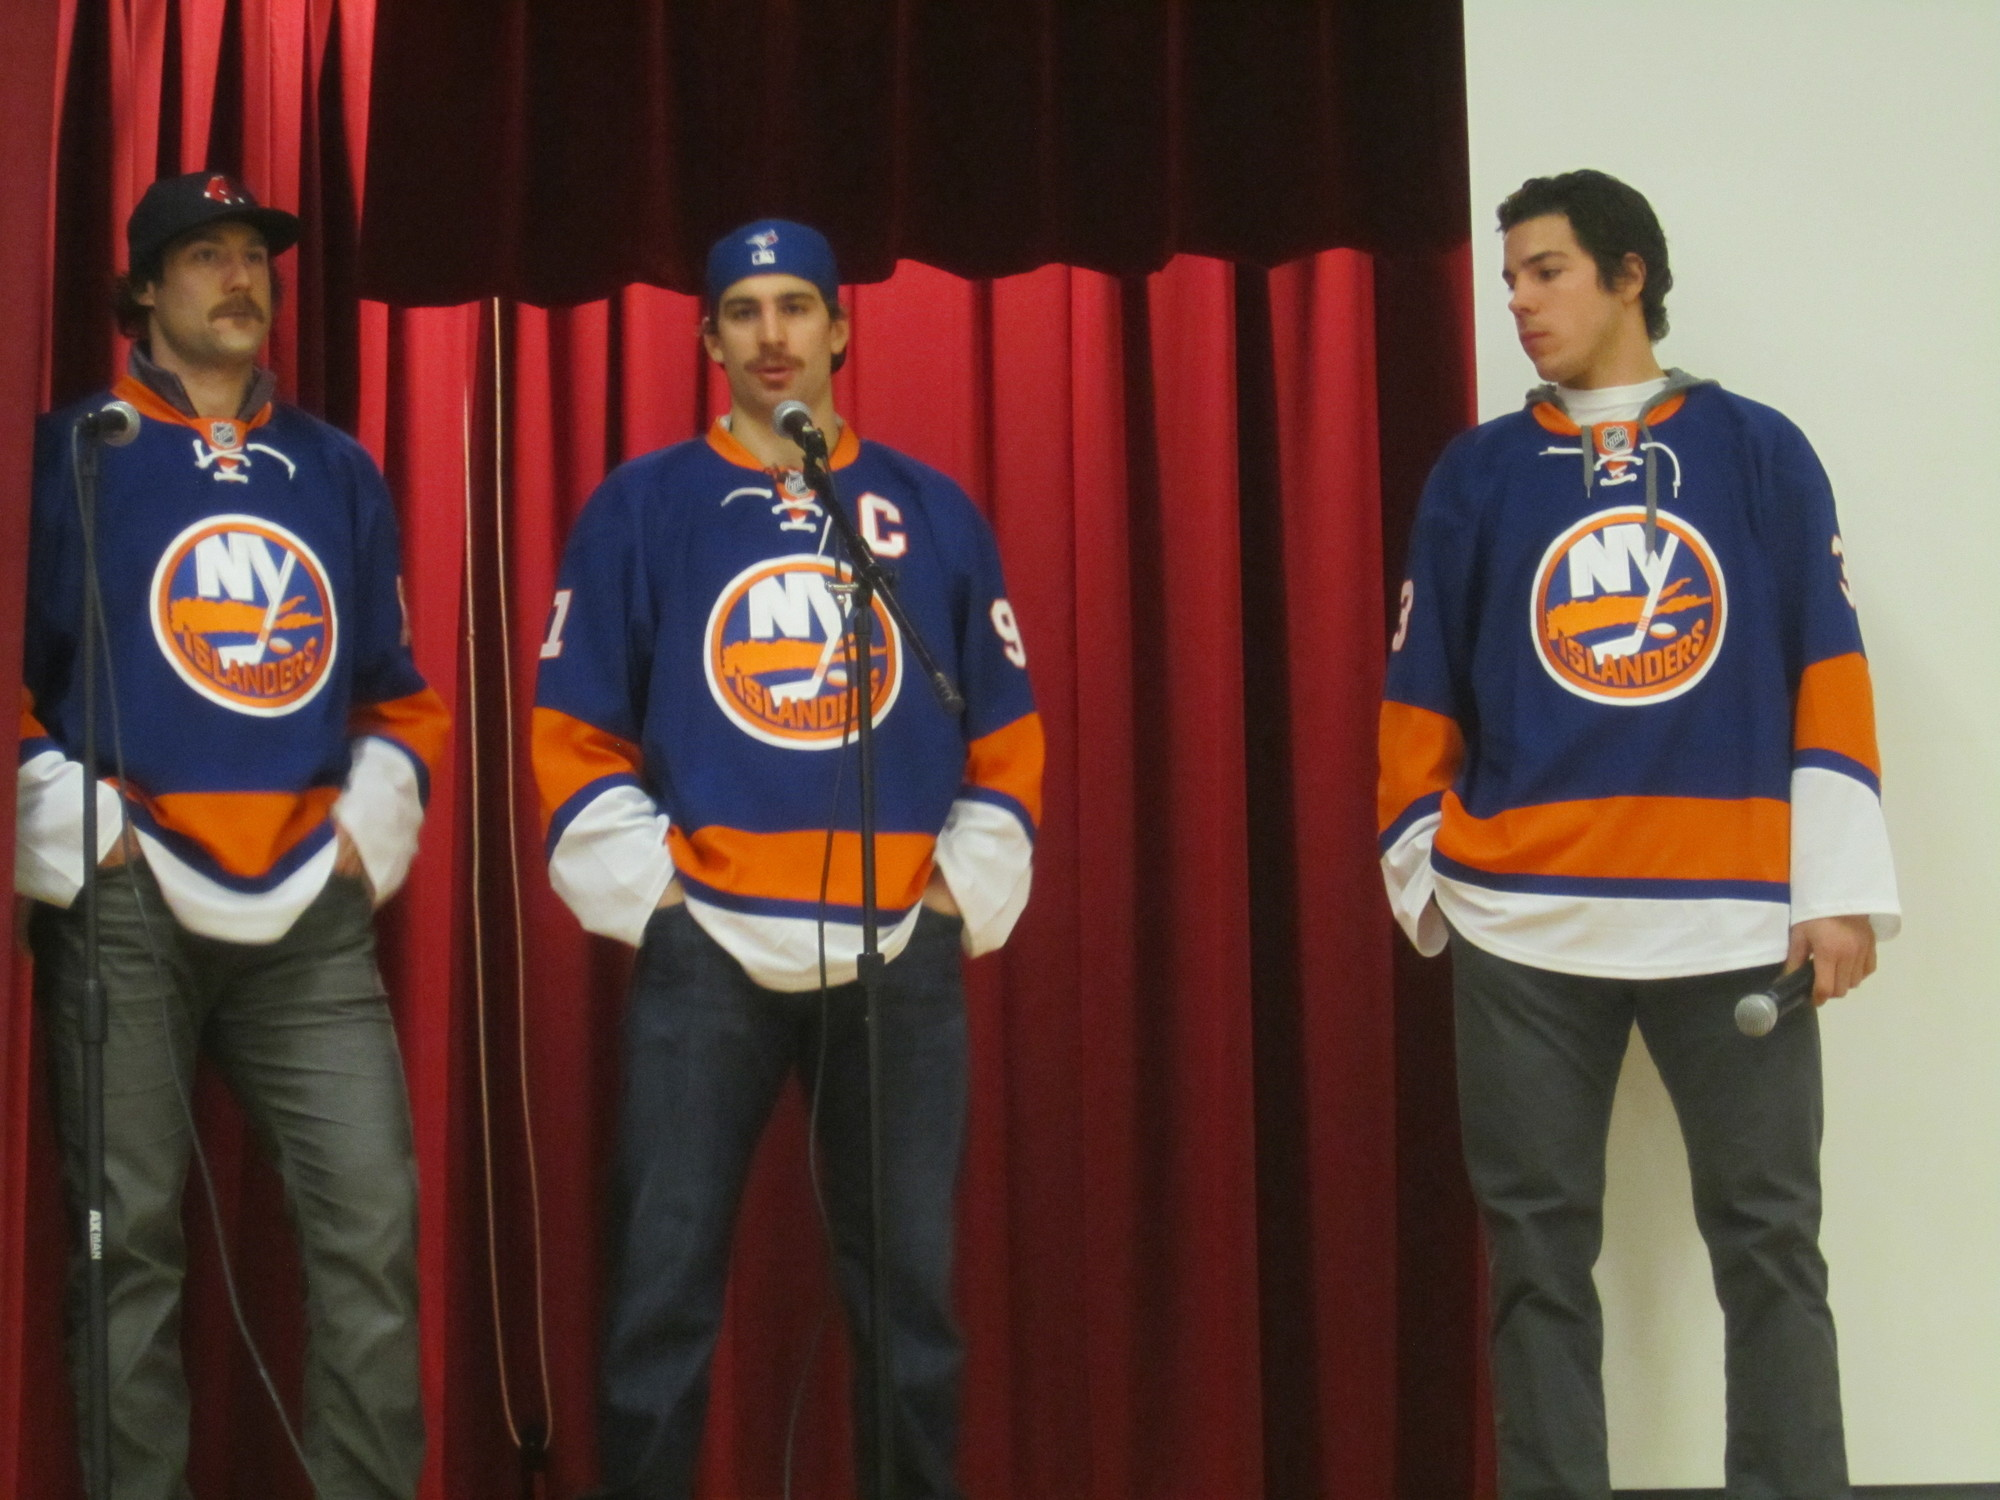 Colin McDonald, 29, a New York Islanders right wing, John Tavares, 23, an Islanders center and the team's captain, and Travis Hamonic, 23, an Islanders defenseman, addressed students on Tuesday at Fayette Elementary School in North Merrick, stressing the importance of education, hard work and teamwork.